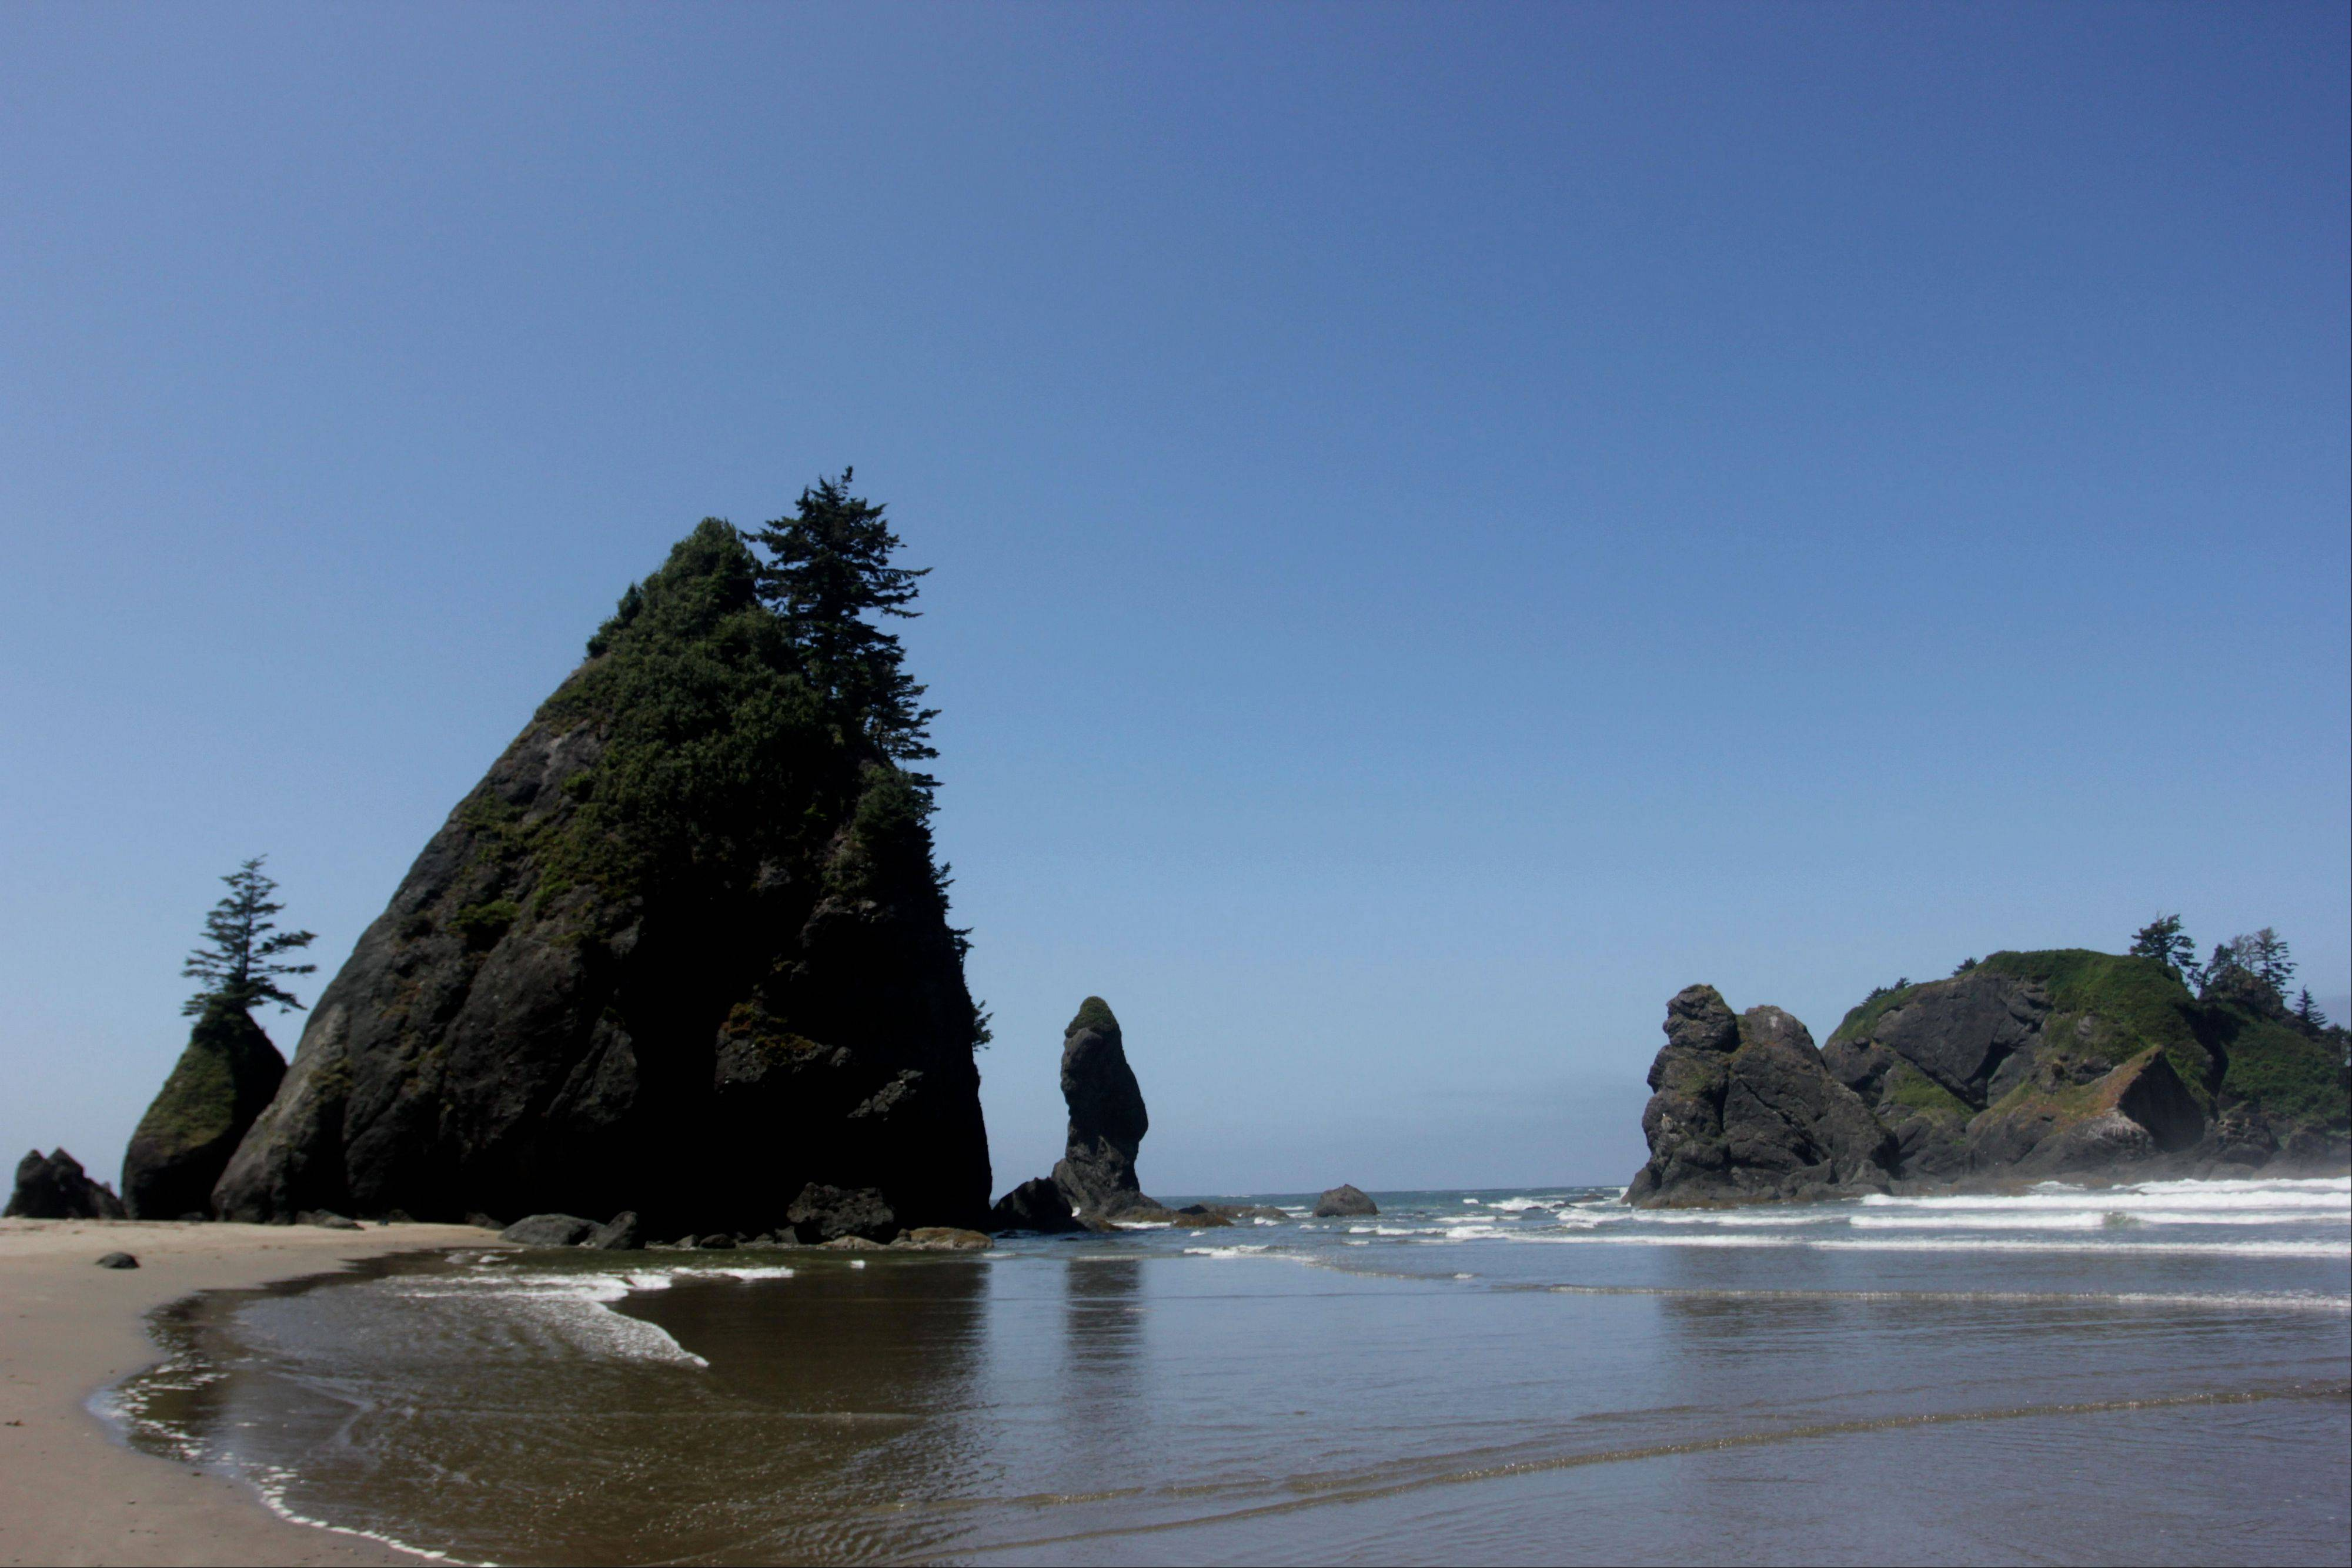 Sea rock formations known as the Point of Archers stand under the afternoon sun near Shi Shi Beach in Washington state's Olympic National Parks.